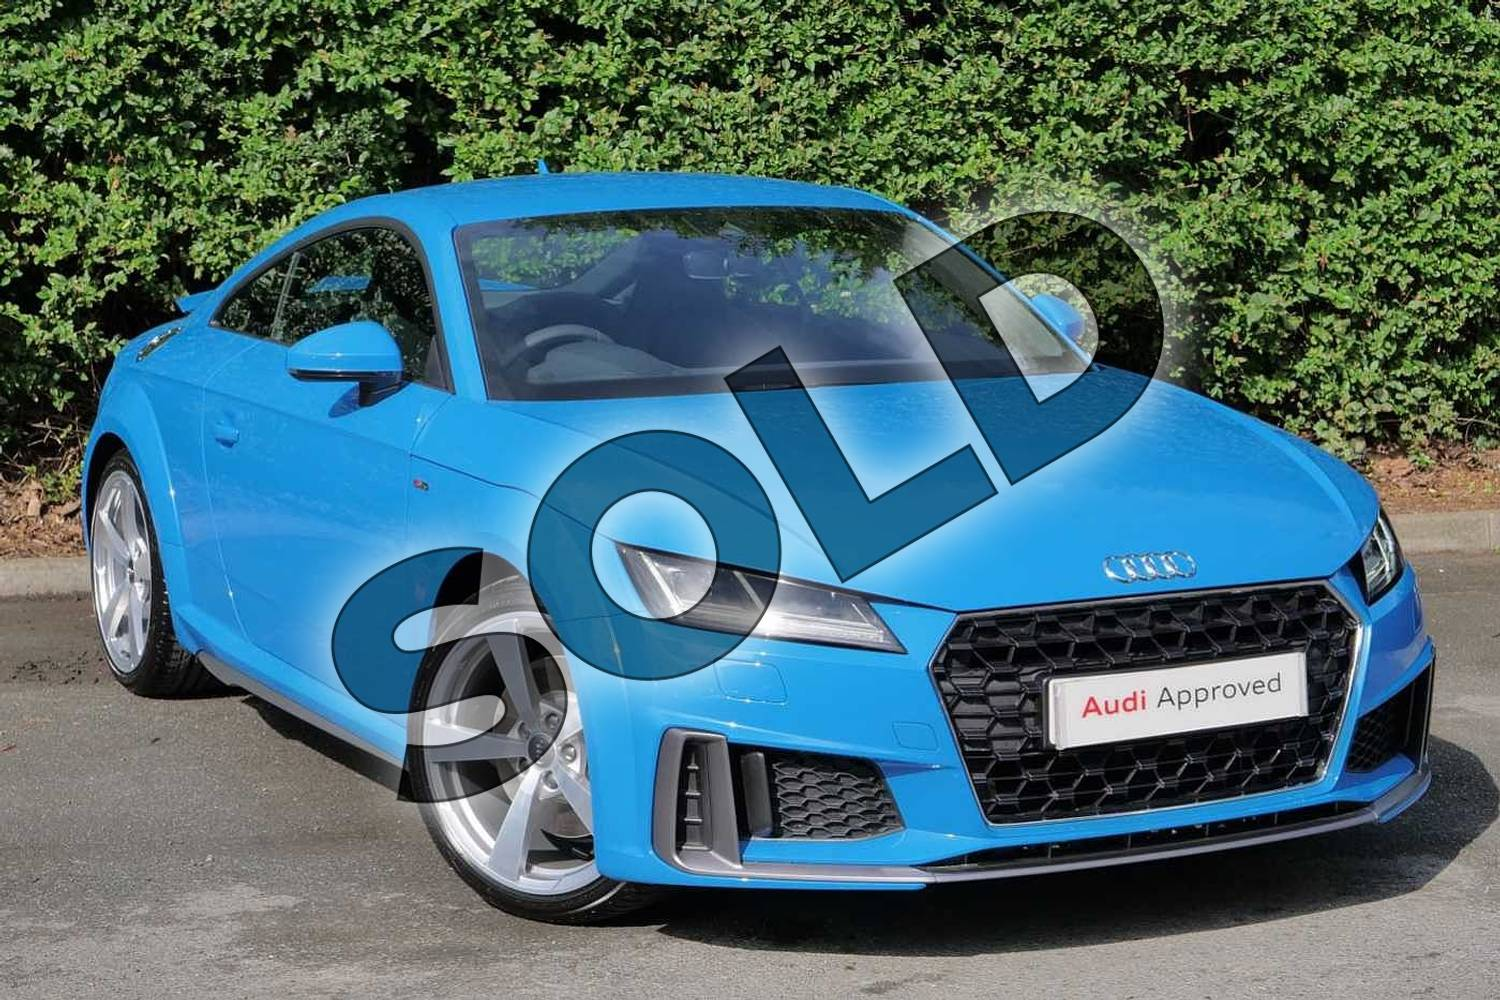 2019 Audi TT Coupe 45 TFSI S Line 2dr S Tronic in Turbo Blue at Worcester Audi